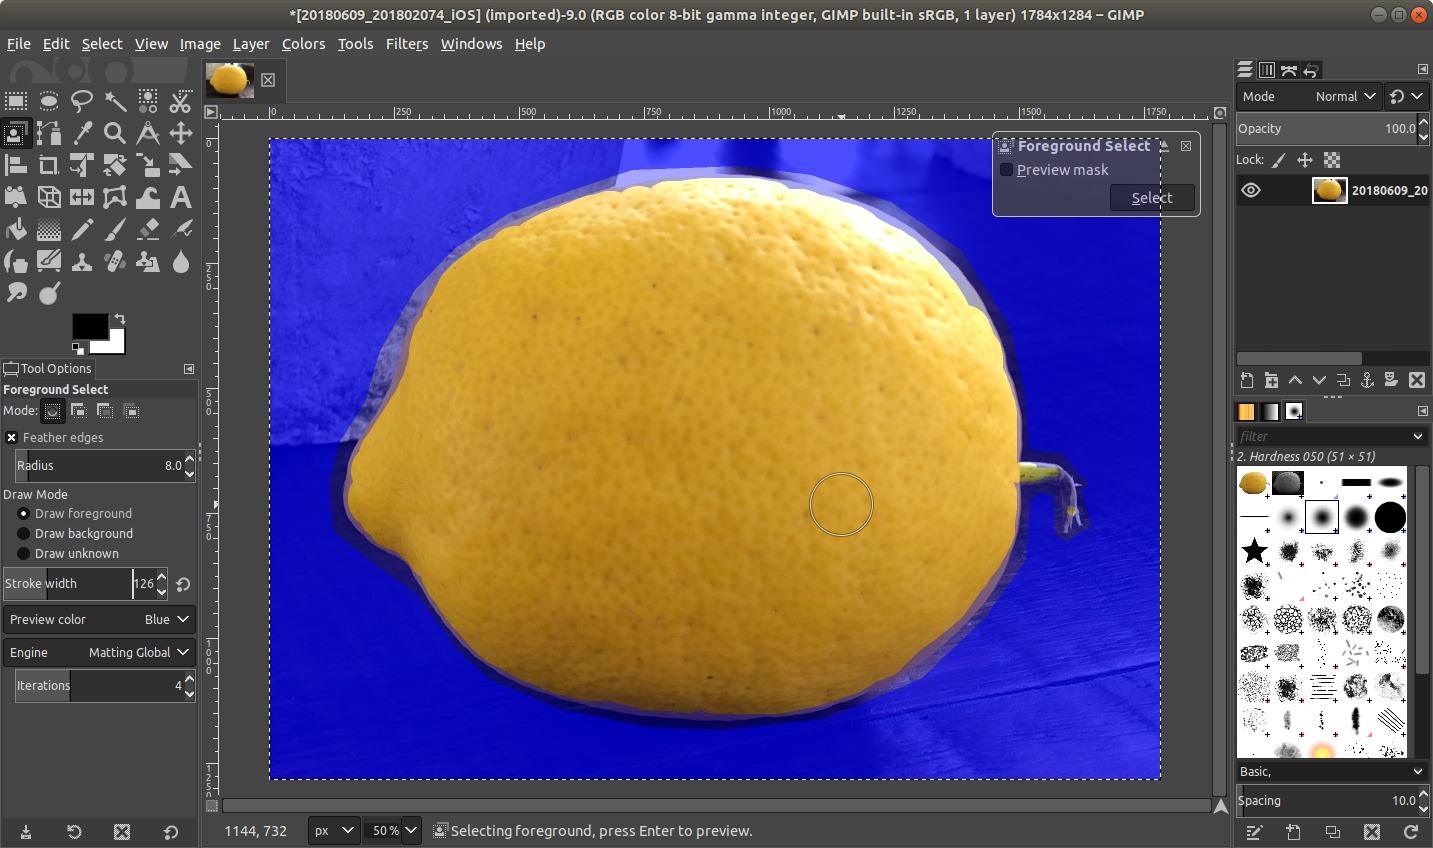 gimp_lemon_foregroundselected.png